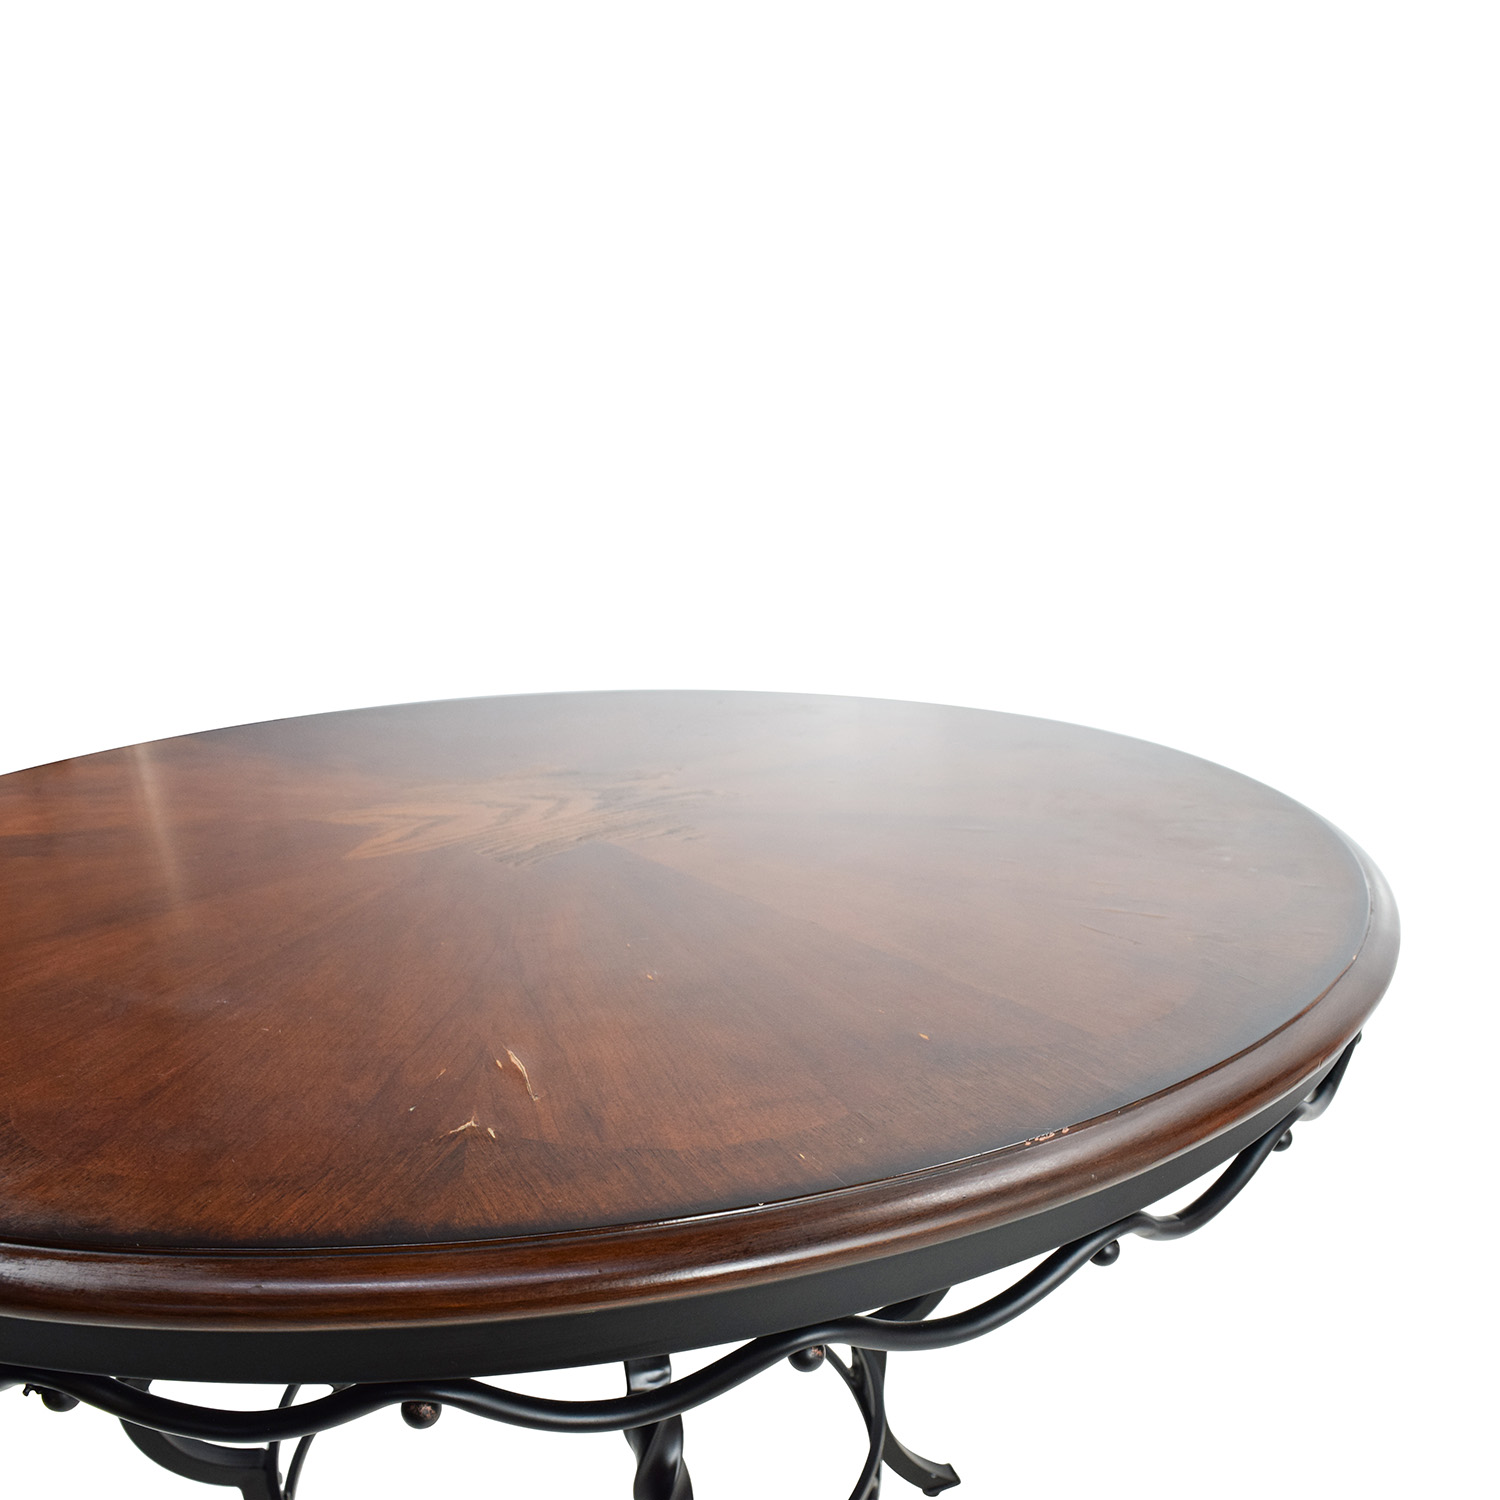 84 off ashley furniture ashley nola round dining table. Black Bedroom Furniture Sets. Home Design Ideas